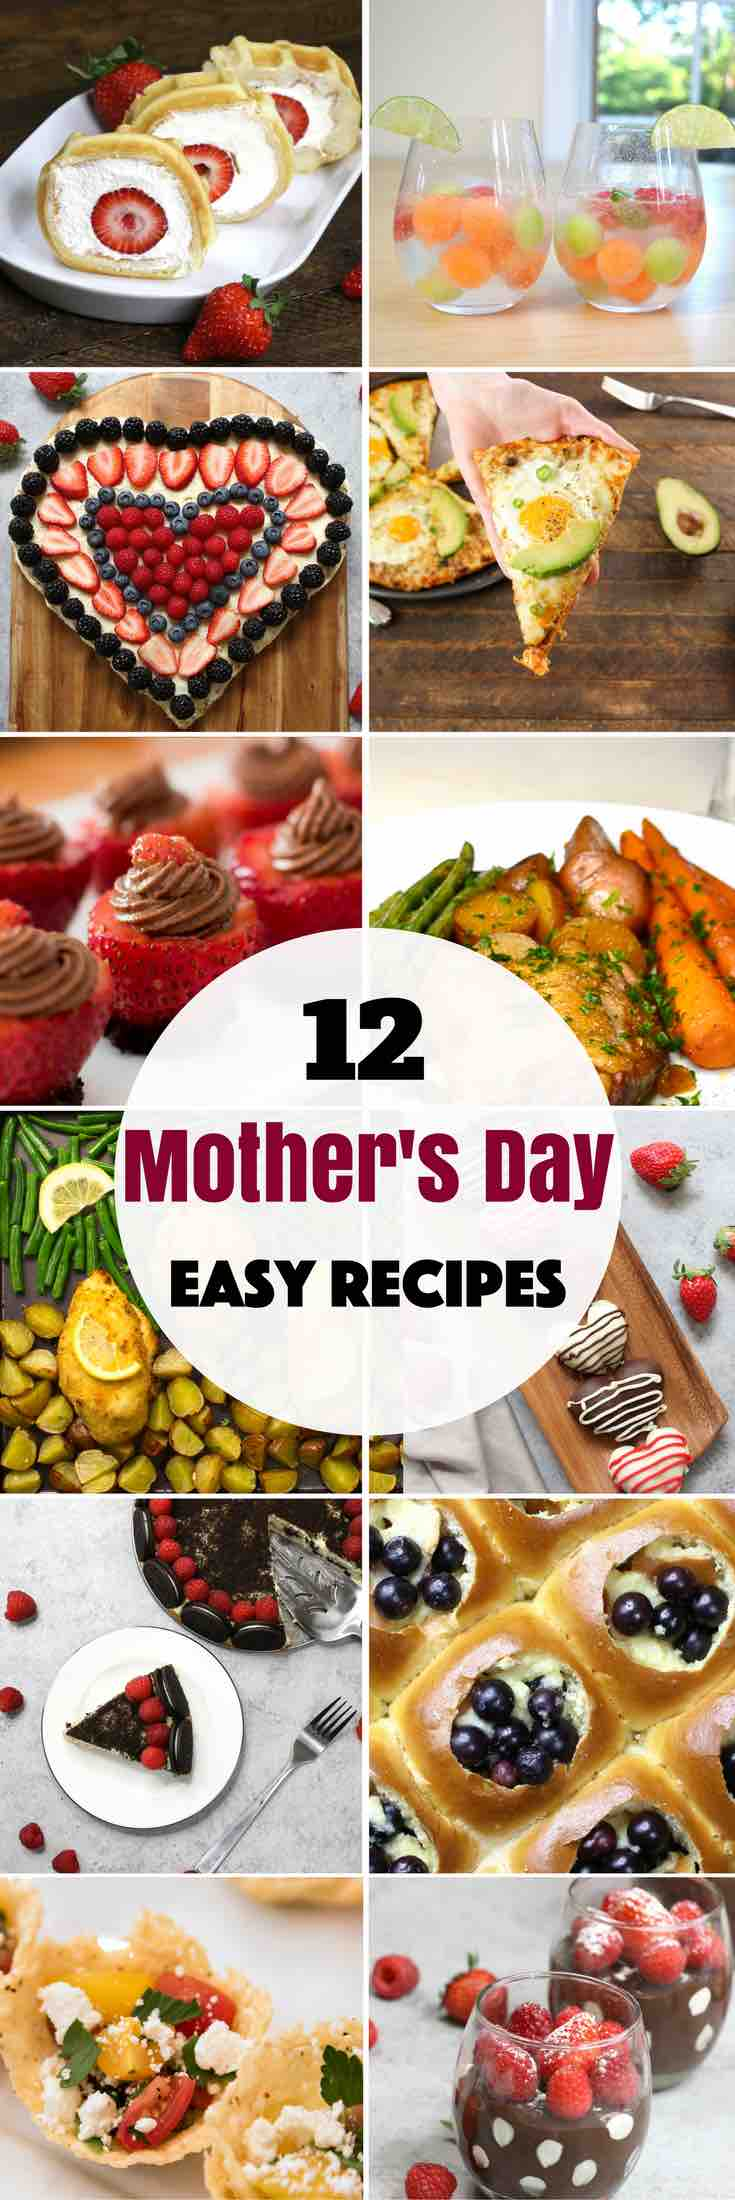 Making the perfect Mother's Day food is the best way to say thanks to the Mother - a good meal lets her know how grateful you are! We have selected our favorite Easy Mother's Day recipes for appetizers, brunch, dinner and more. From Strawberry Waffle Cake Rollups to Baked Crispy Sheet Pan Chicken & Veggies, and everything in between, these ideas will make the mother feel very special.